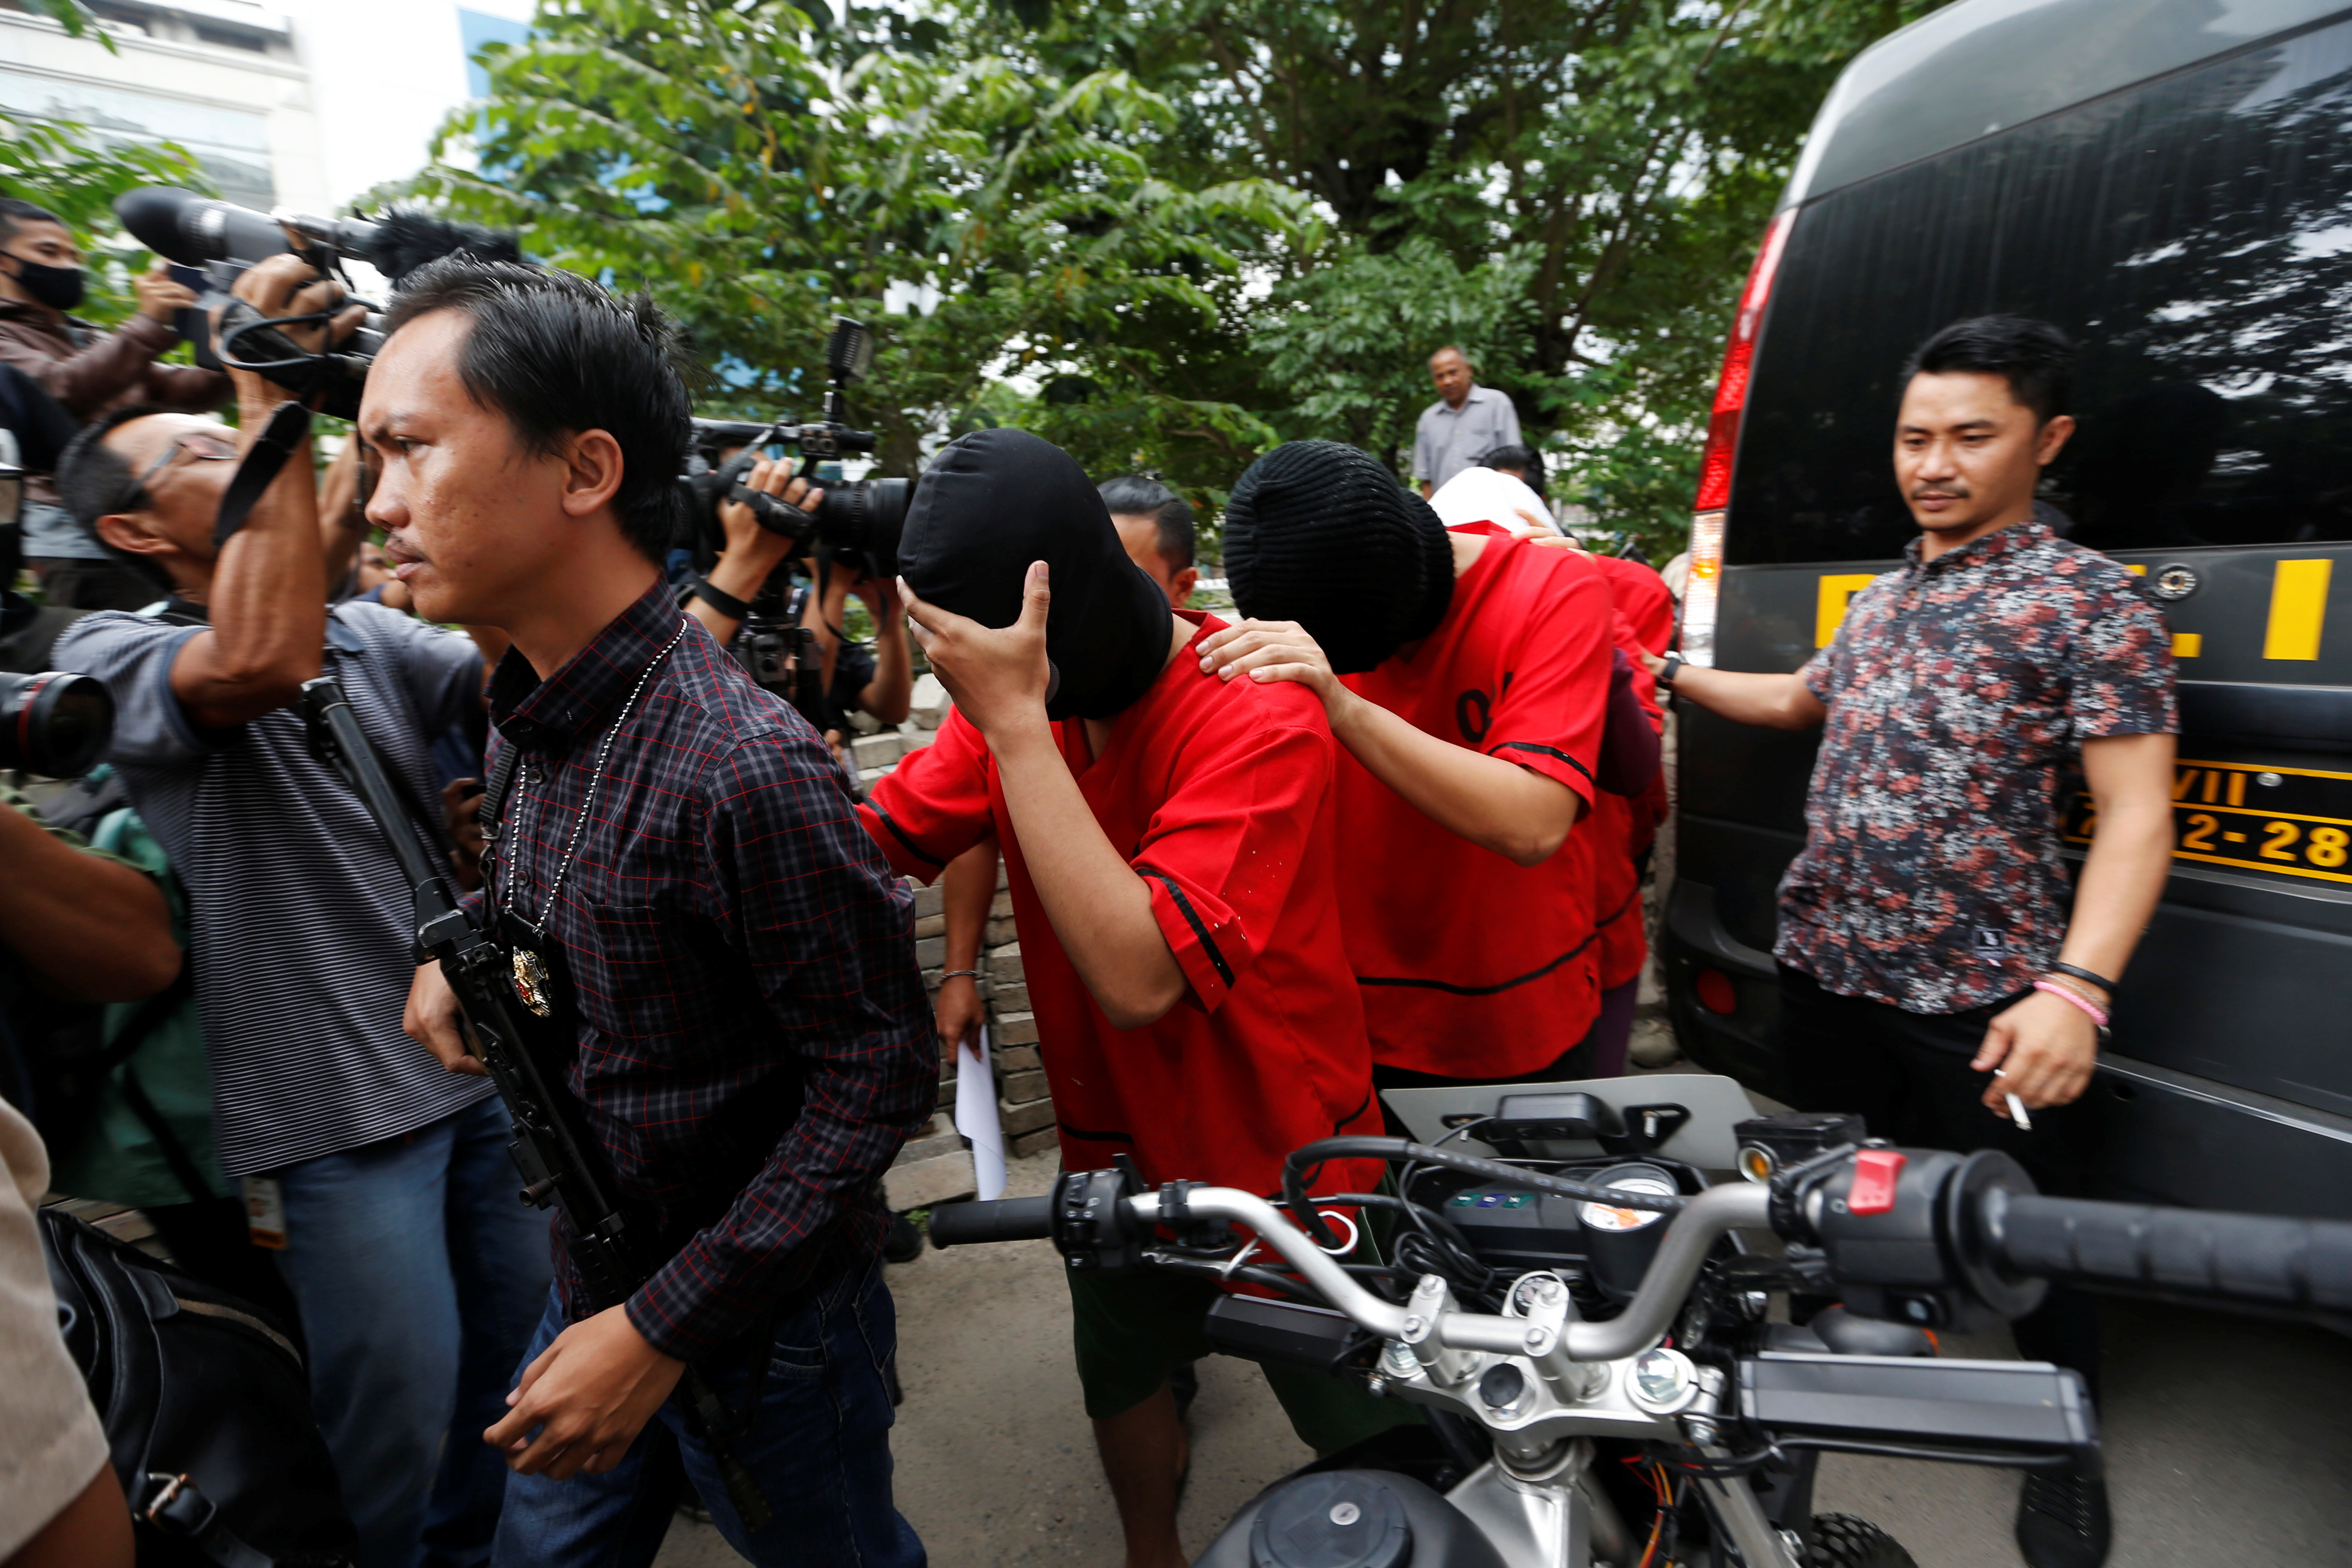 """FILE - A plainclothes policeman holds a rifle as he escorts suspects during a police investigation into a men's club after a weekend raid on what authorities described as a """"gay spa"""" in Jakarta, Indonesia, Oct. 9, 2017."""